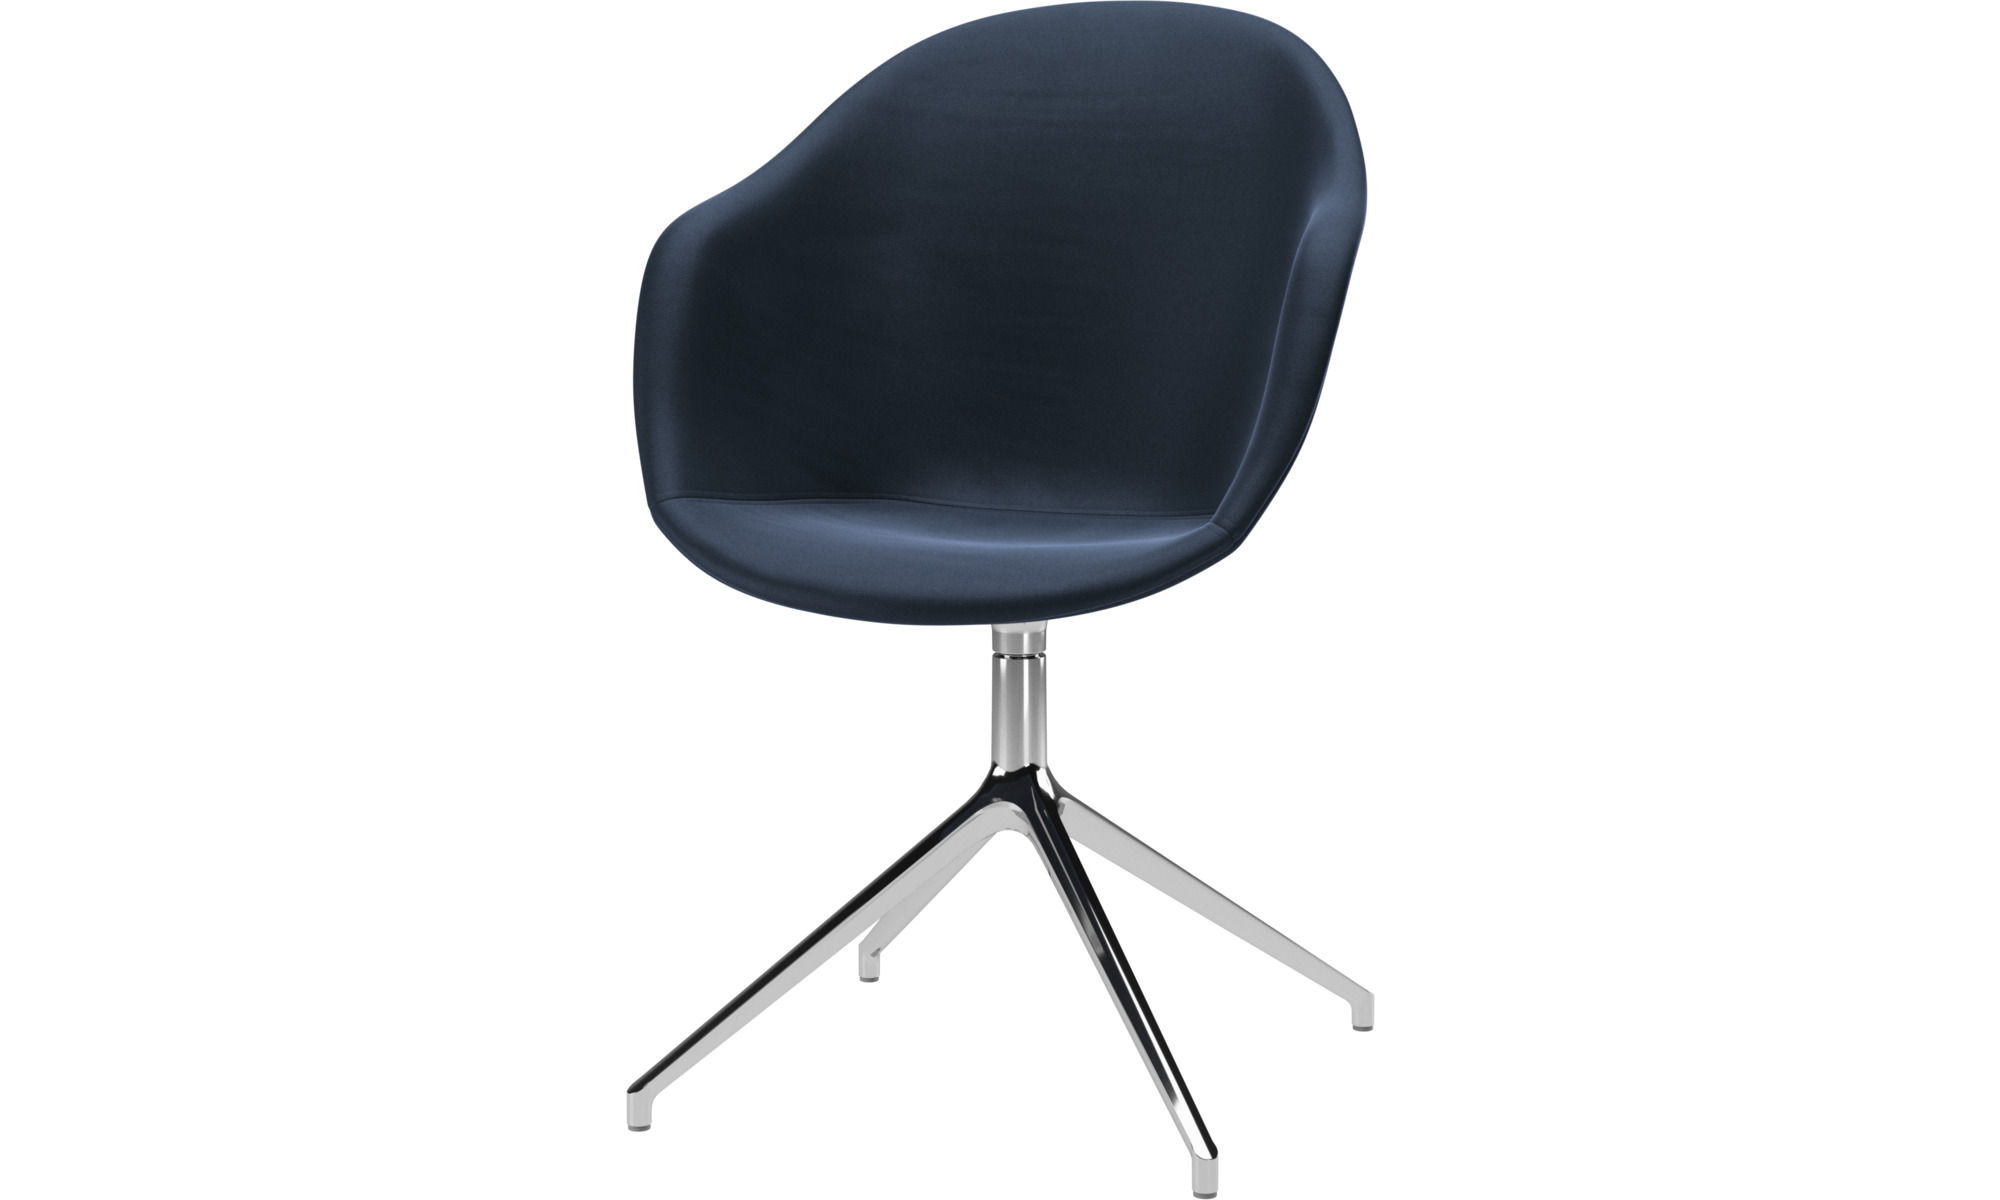 Home office chairs - Adelaide chair with swivel function - Blue - Leather